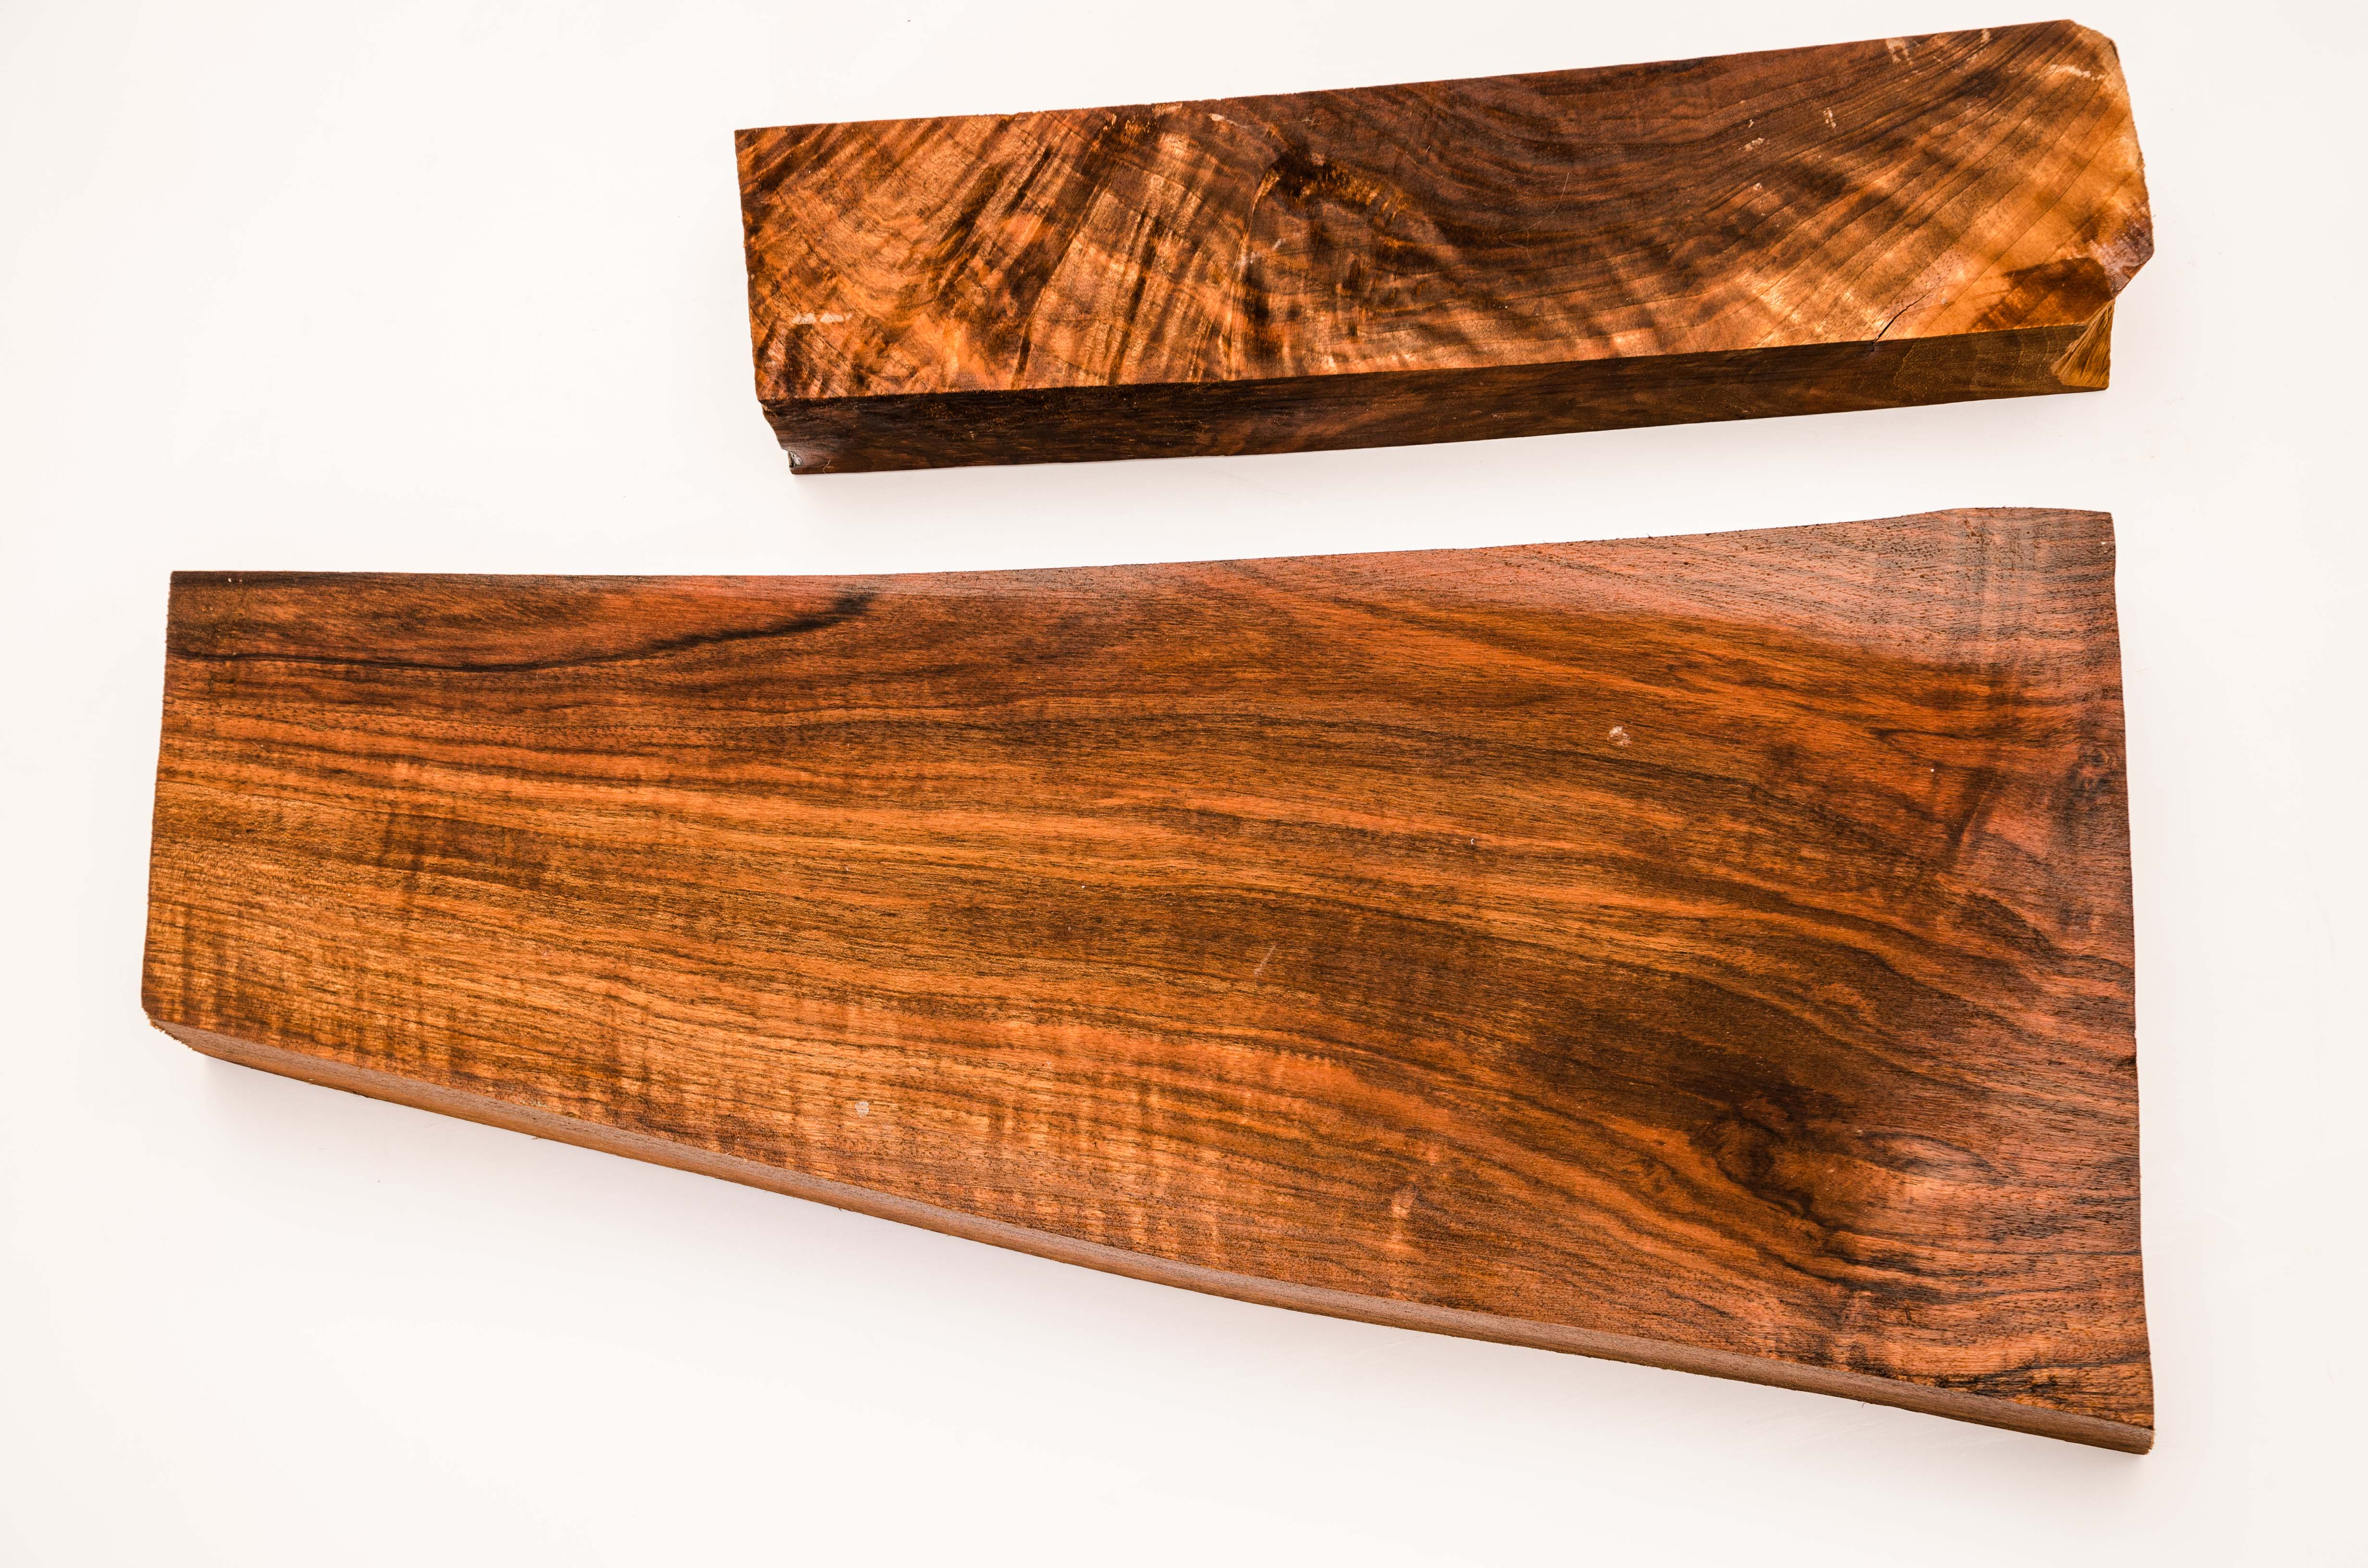 walnut_stock_blanks_for_guns_and_rifles-0548